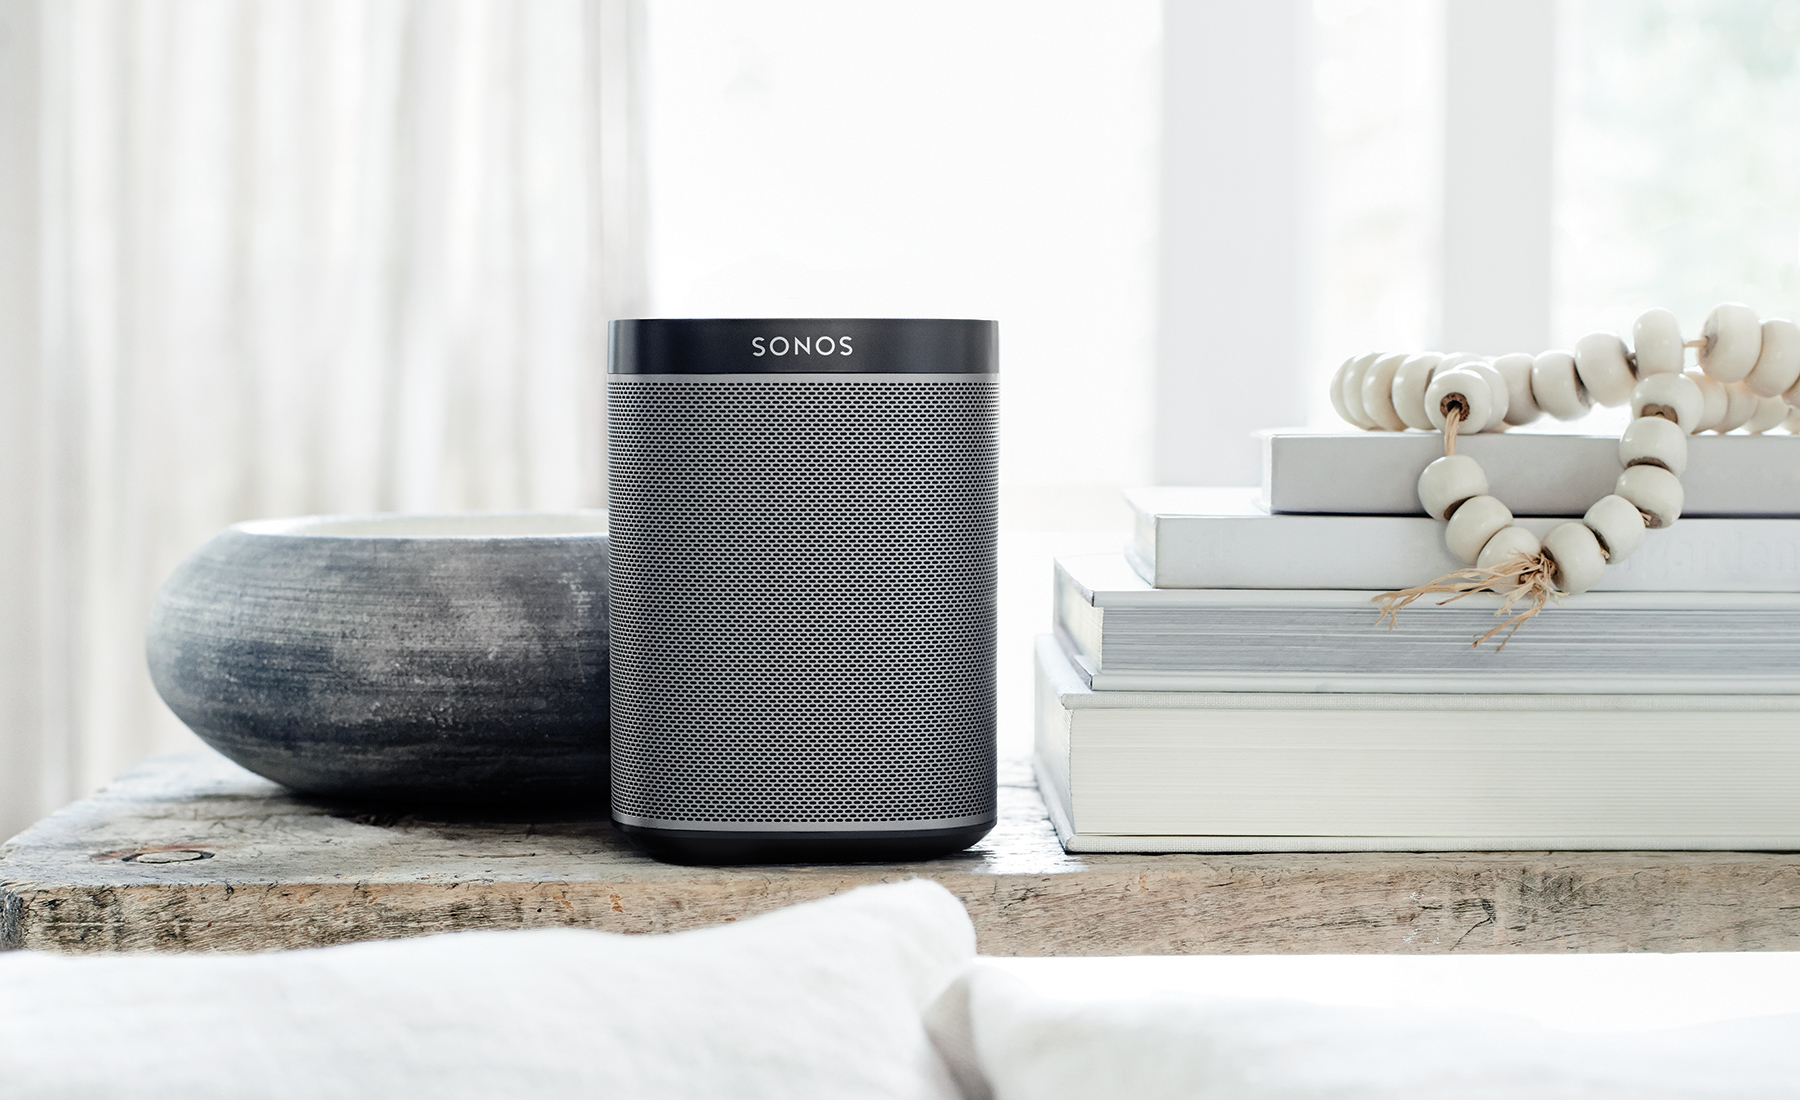 Home speaker company Sonos raise United Kingdom  prices 25% following Brexit vote